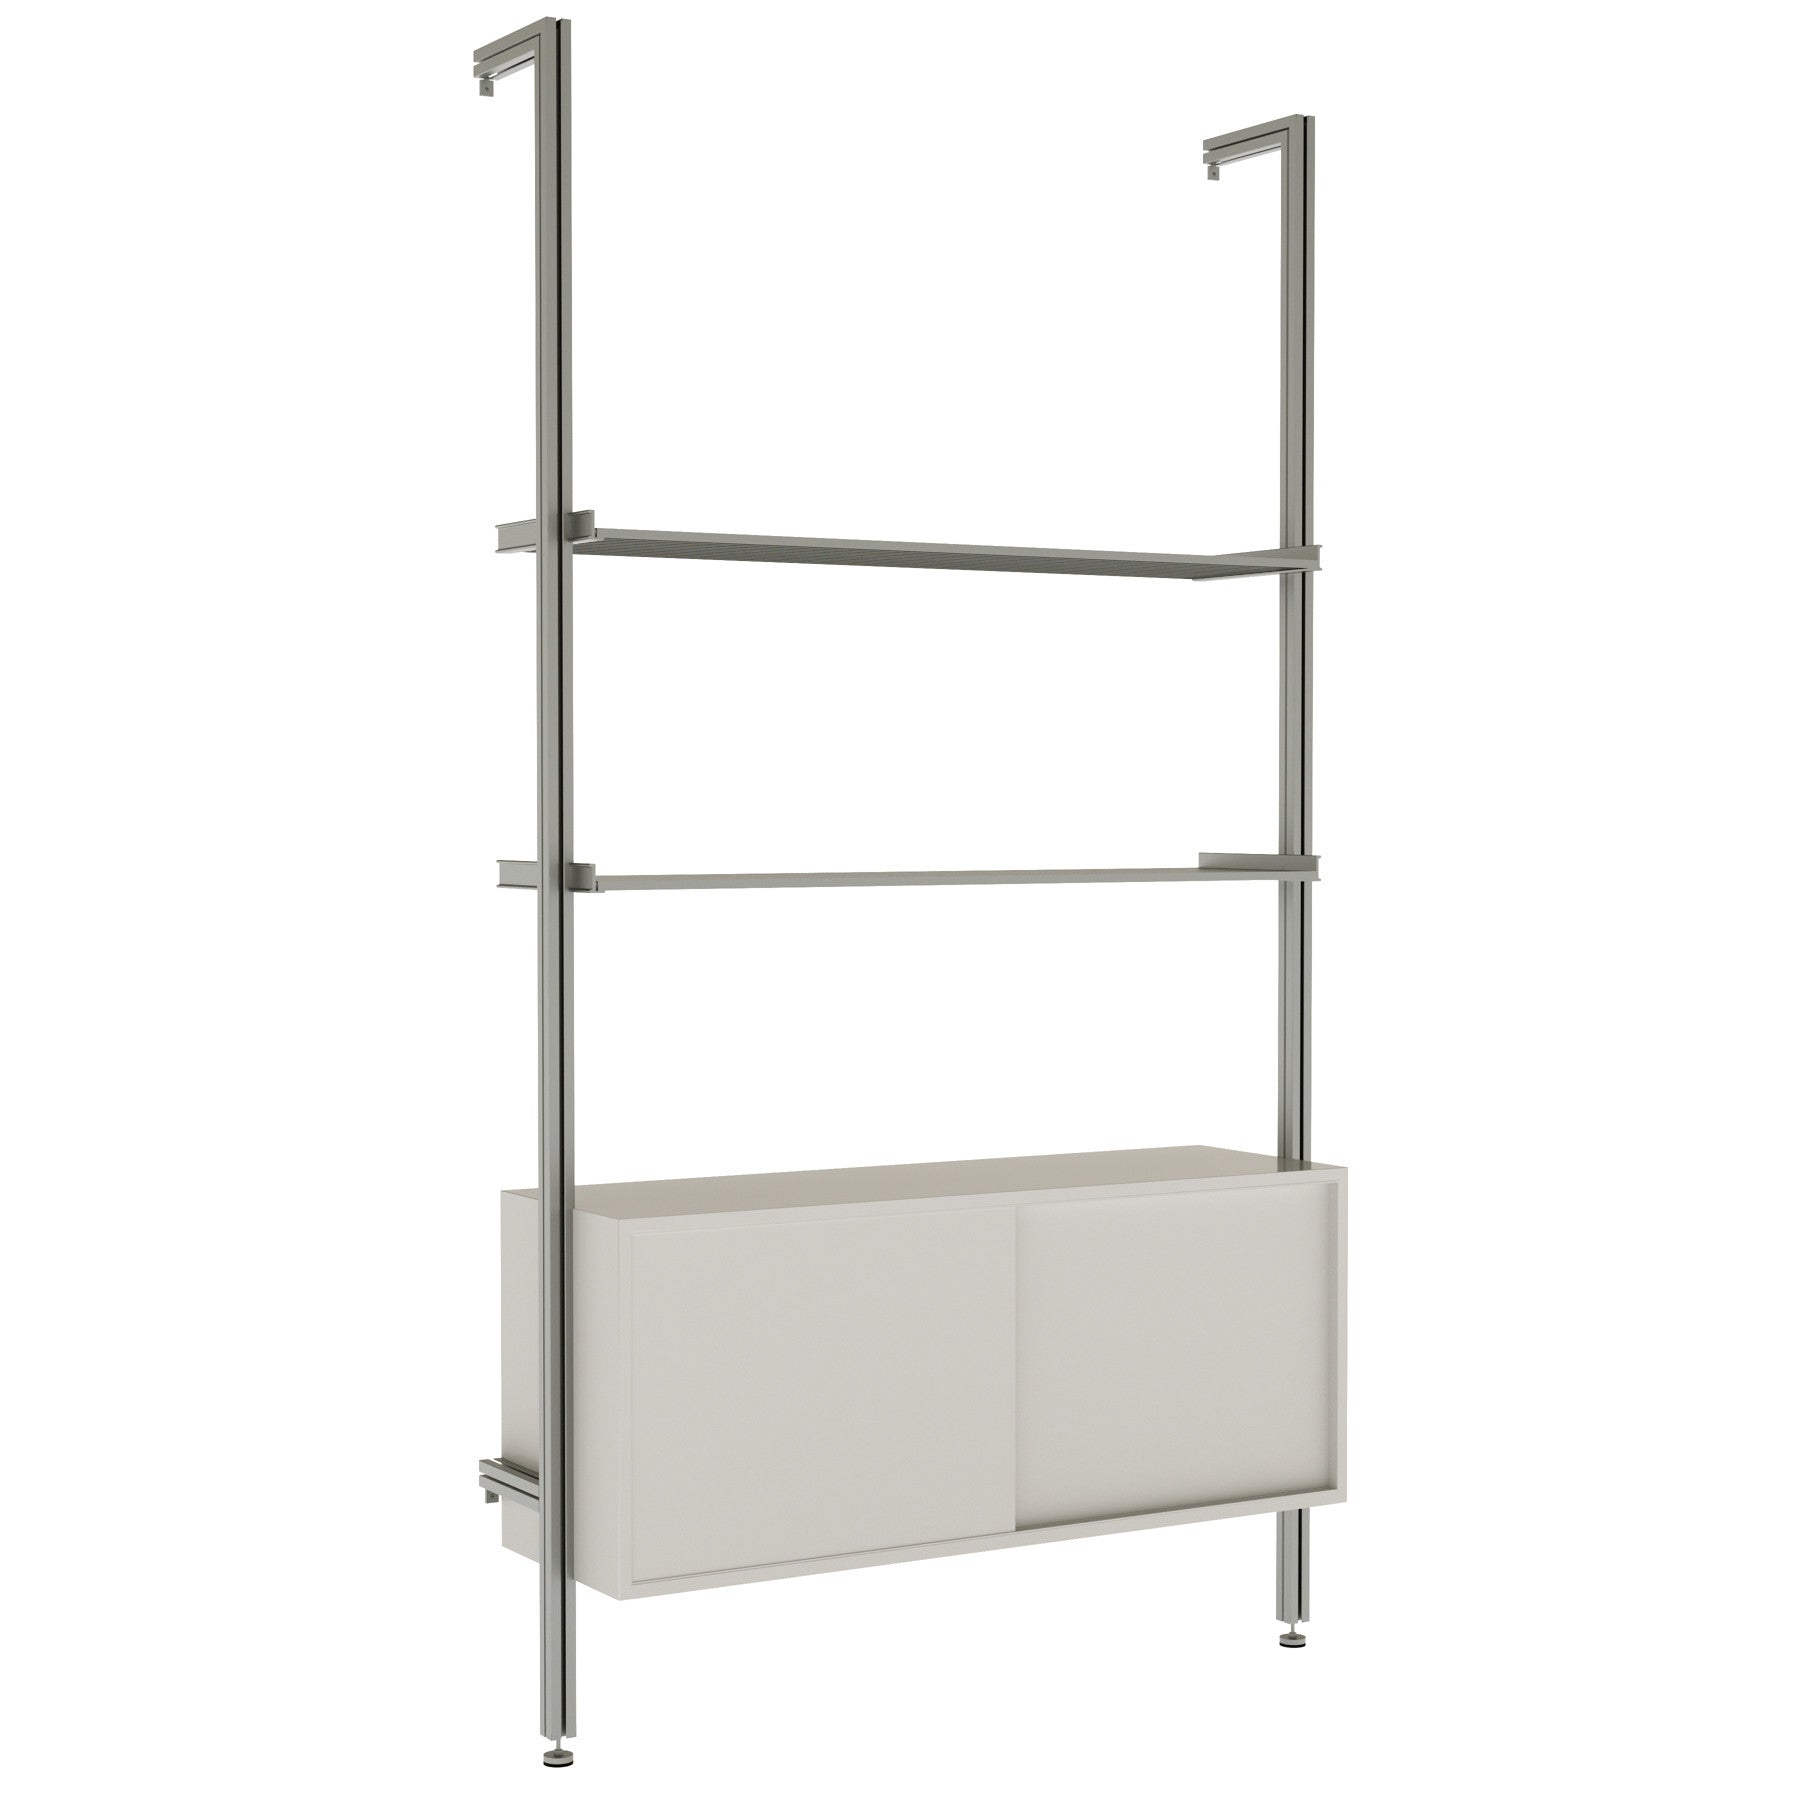 3Bay RAD  Pole Mounted Aluminum Shelving With Sliding Door Cabinets